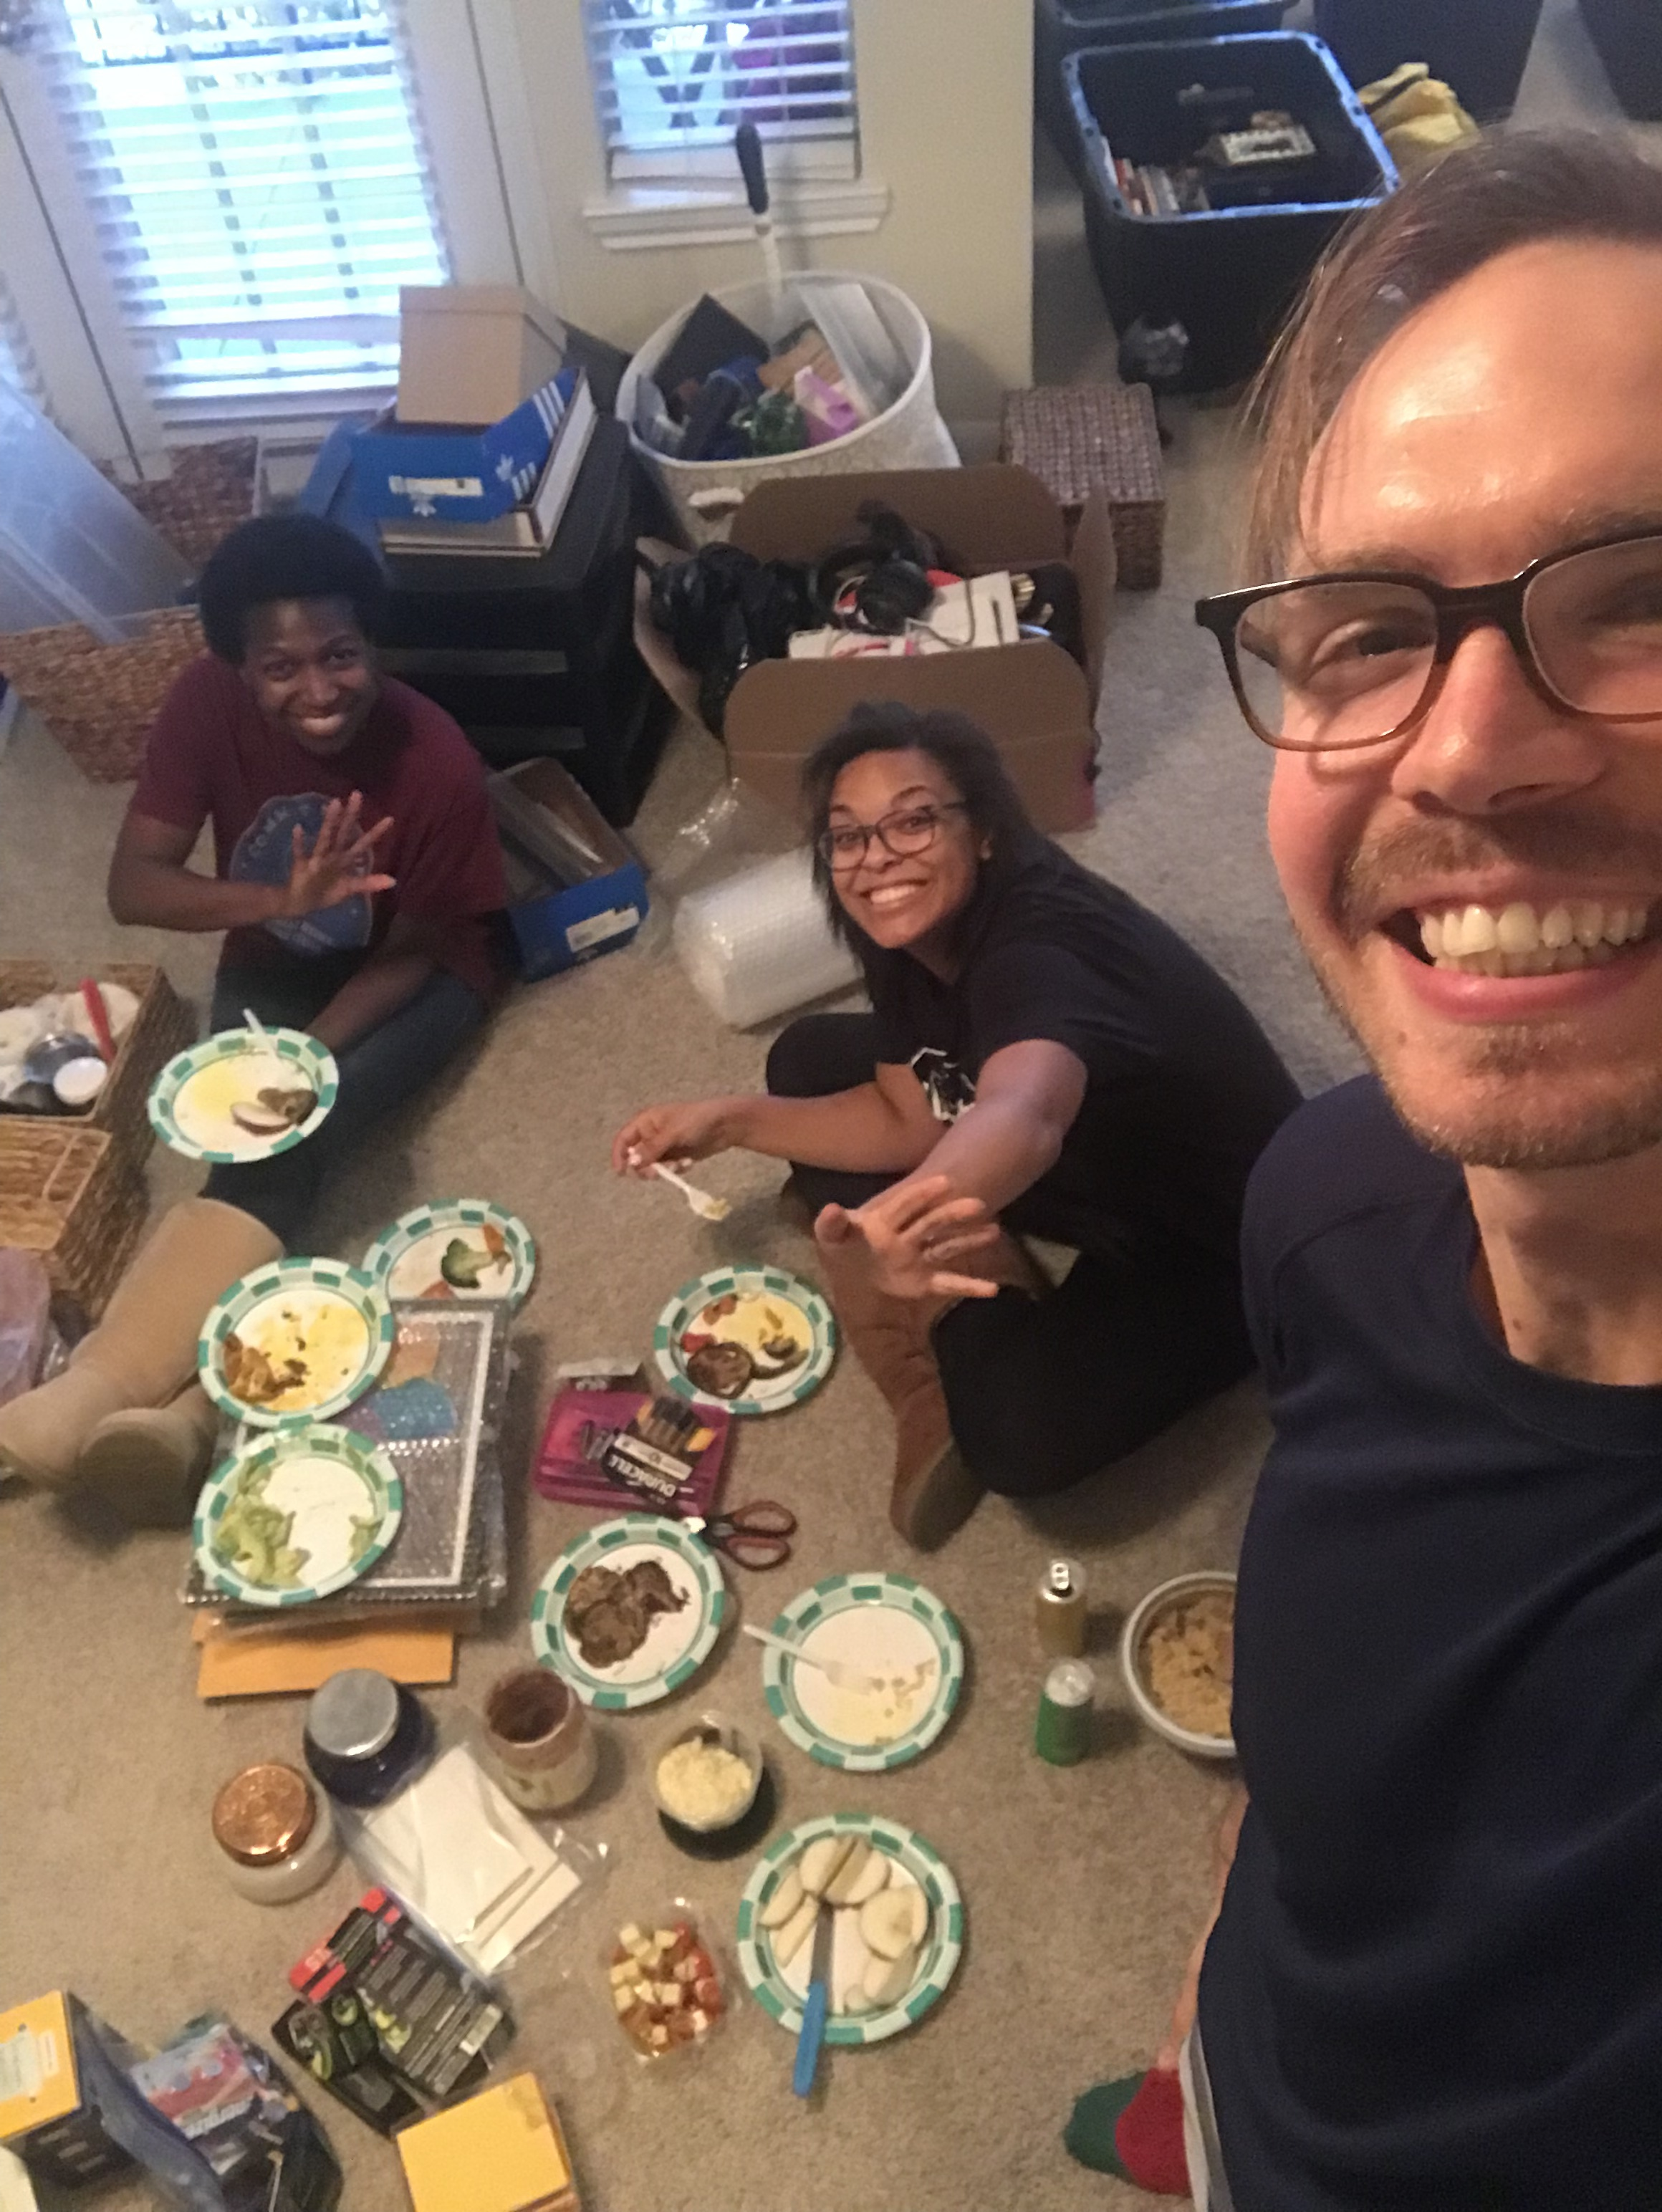 This was our impromptu packing party picnic on the living room floor.